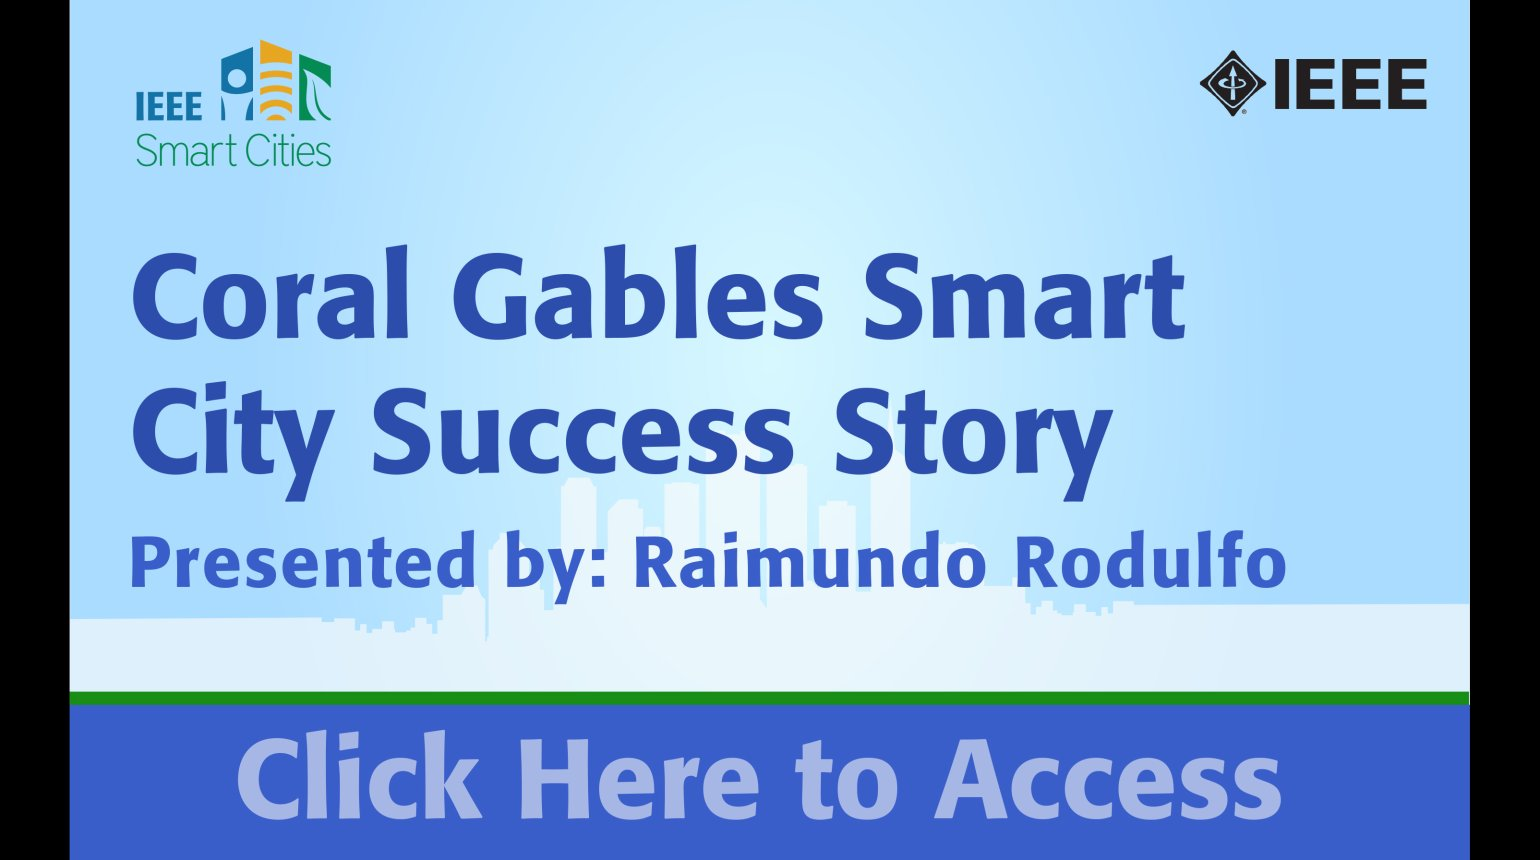 IEEE Smart Cities Webinar - Coral Gables Smart City Success Story